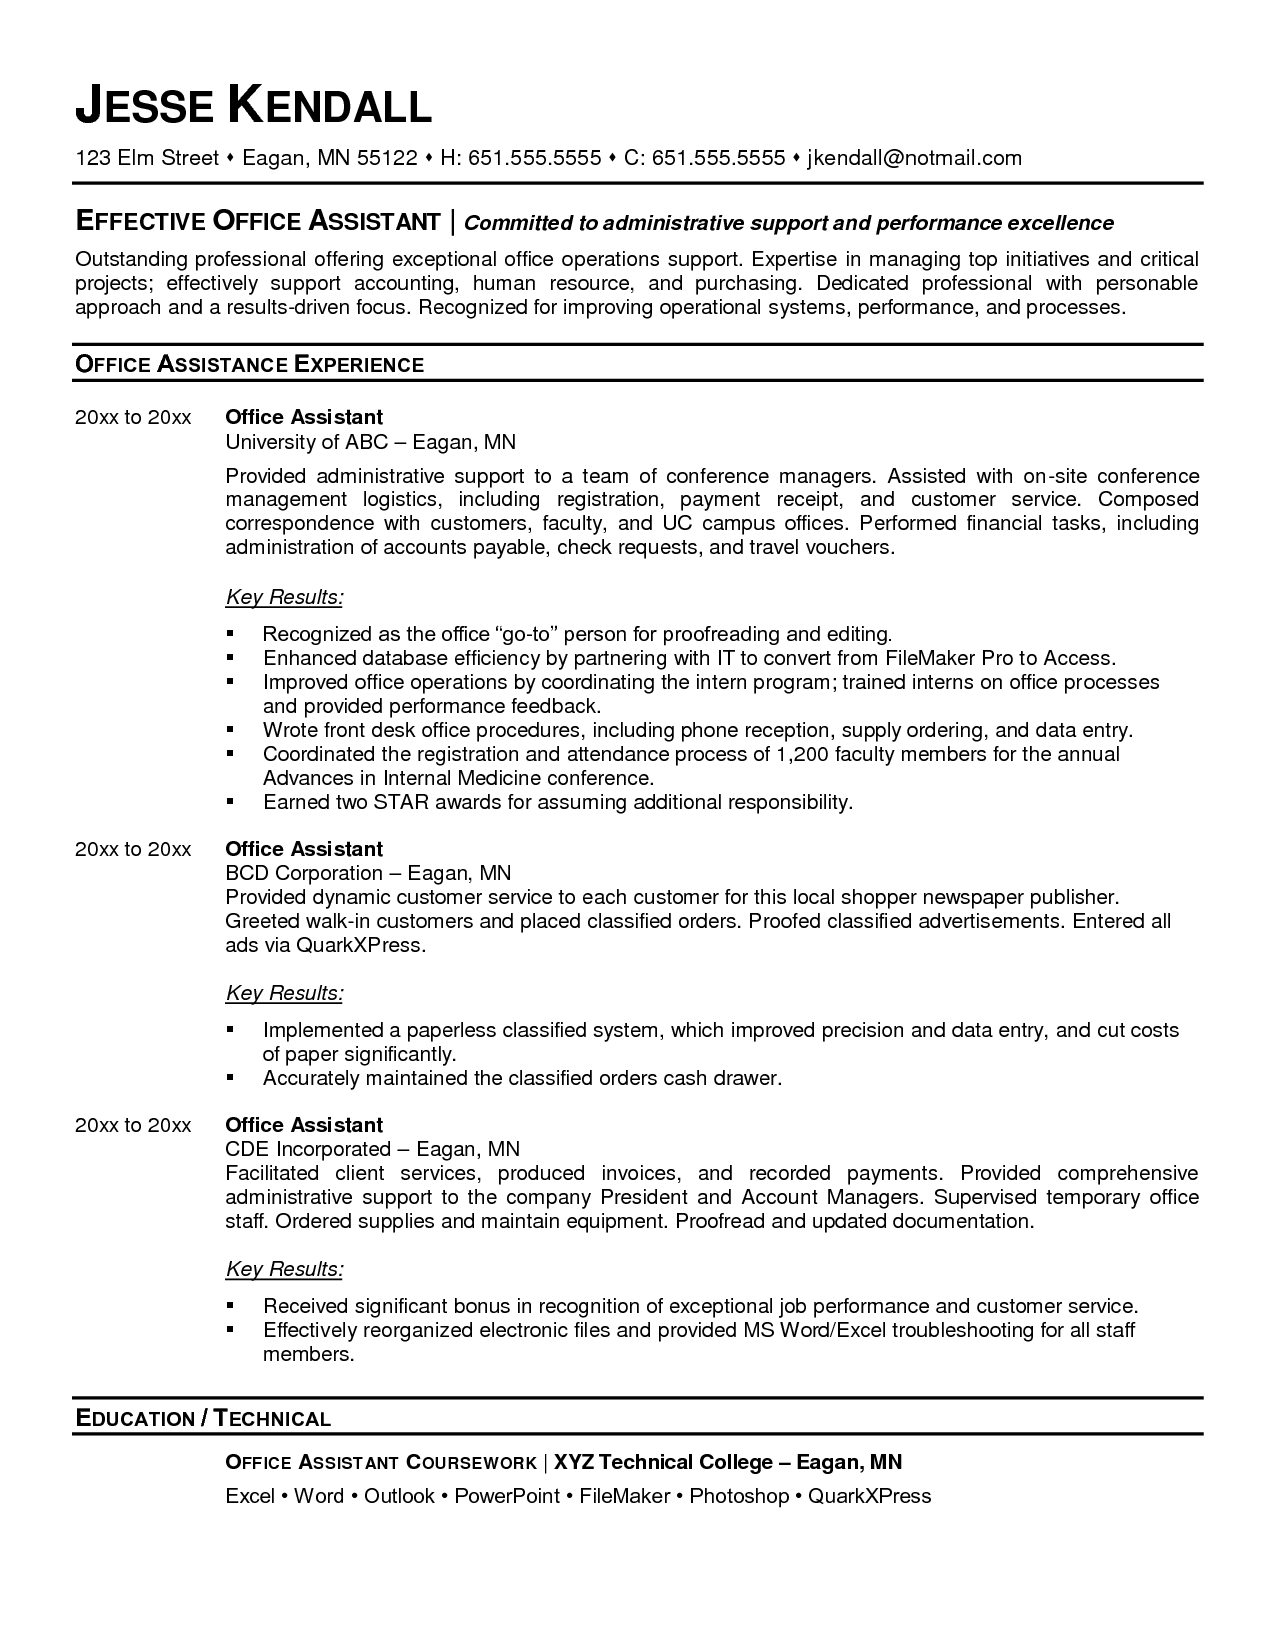 Medical Assistant Resume Graduate - http://www.resumecareer.info ...